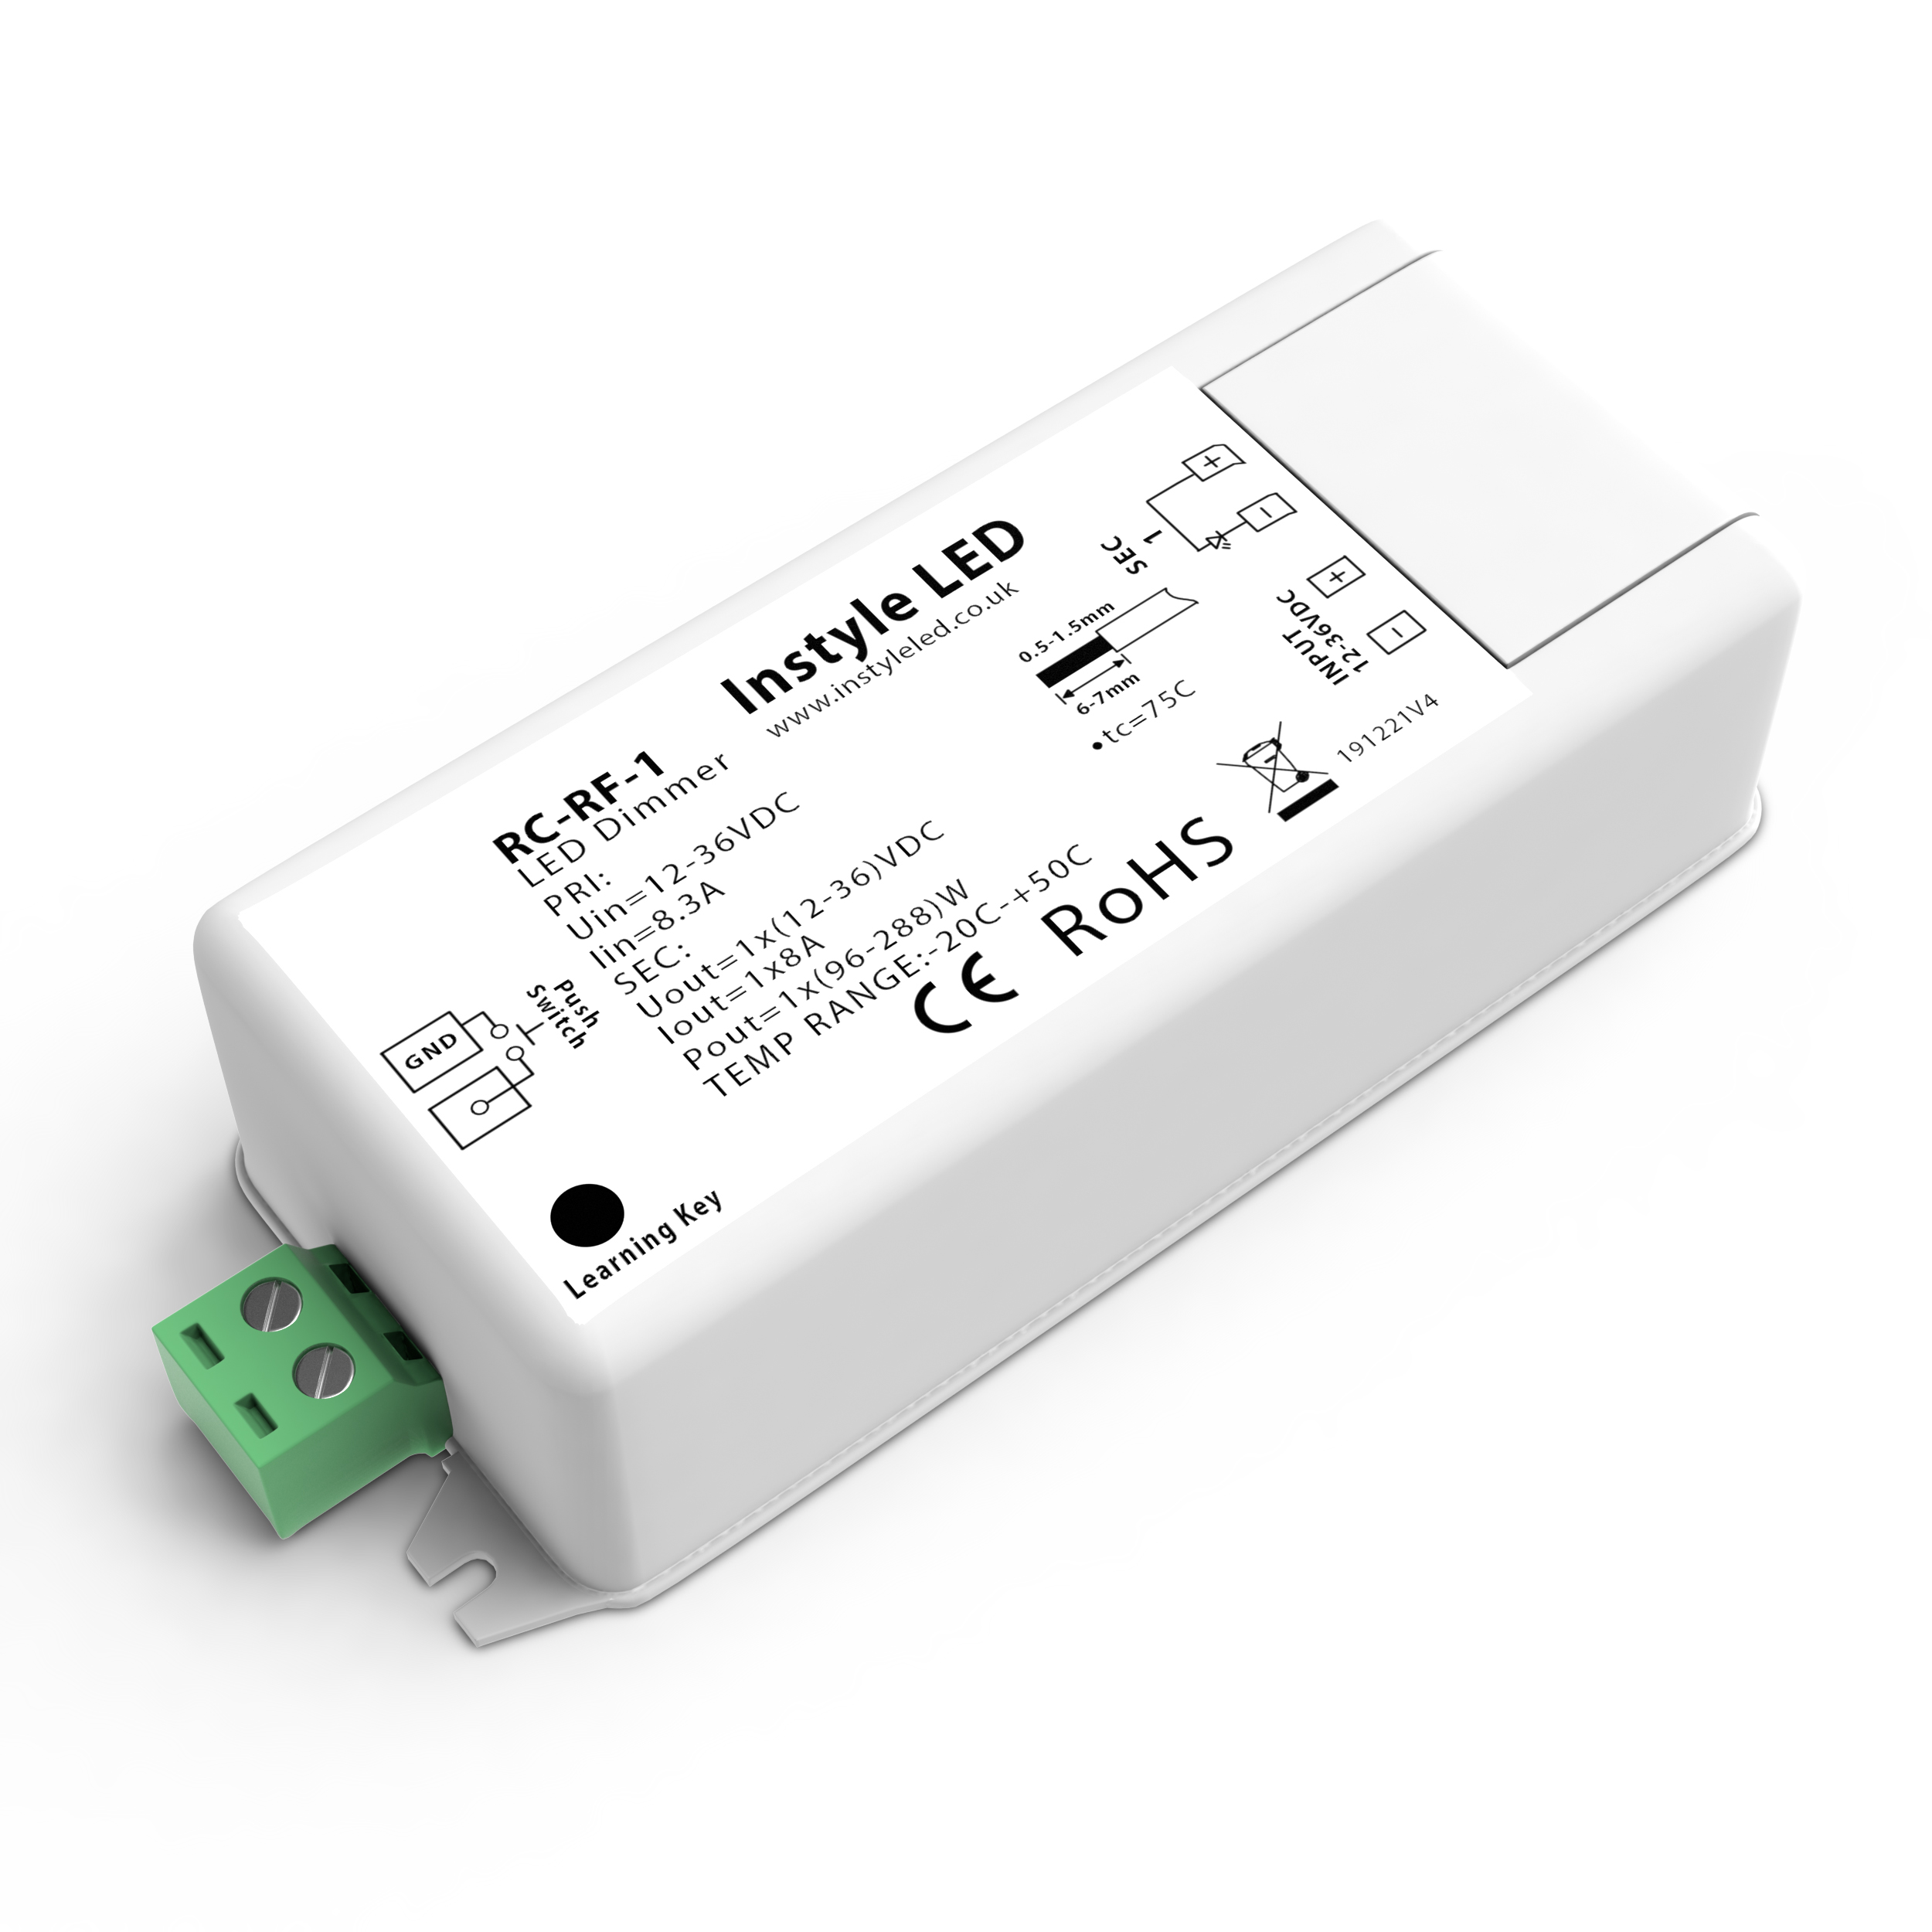 Single-channel Wireless Dimmer Module